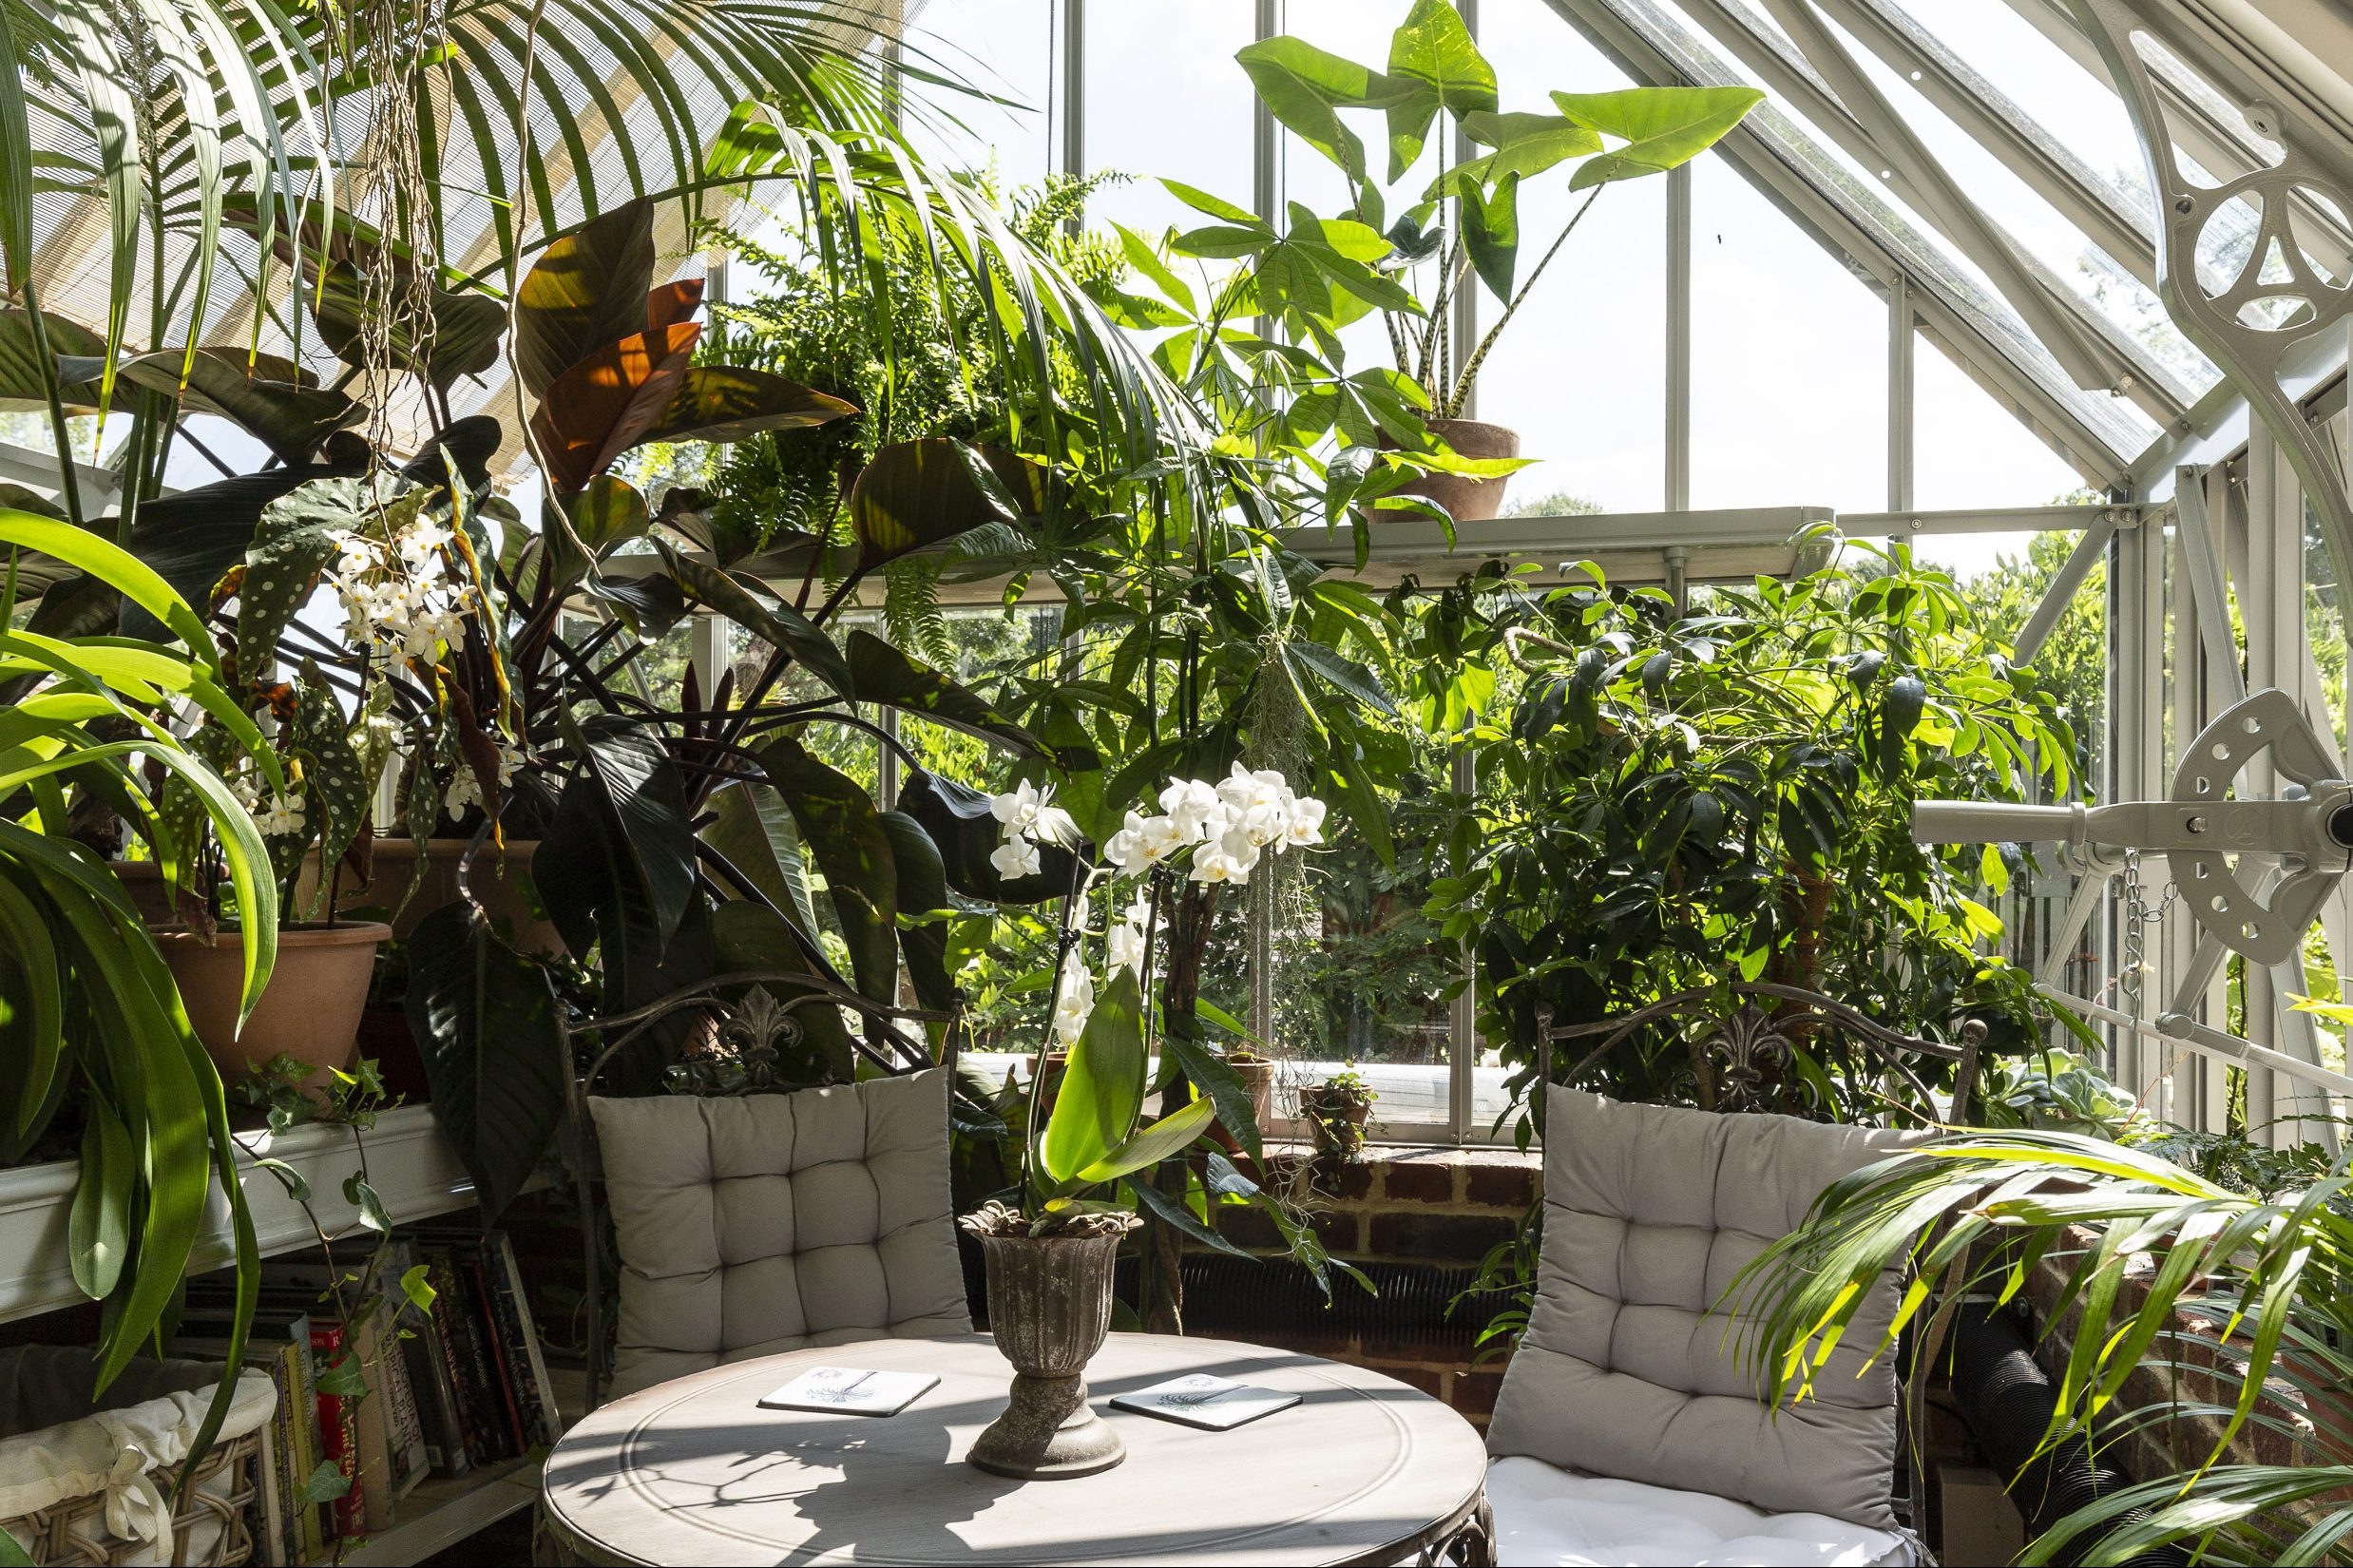 A garden greenhouse with dining area surrounded with small trees and lush green plants